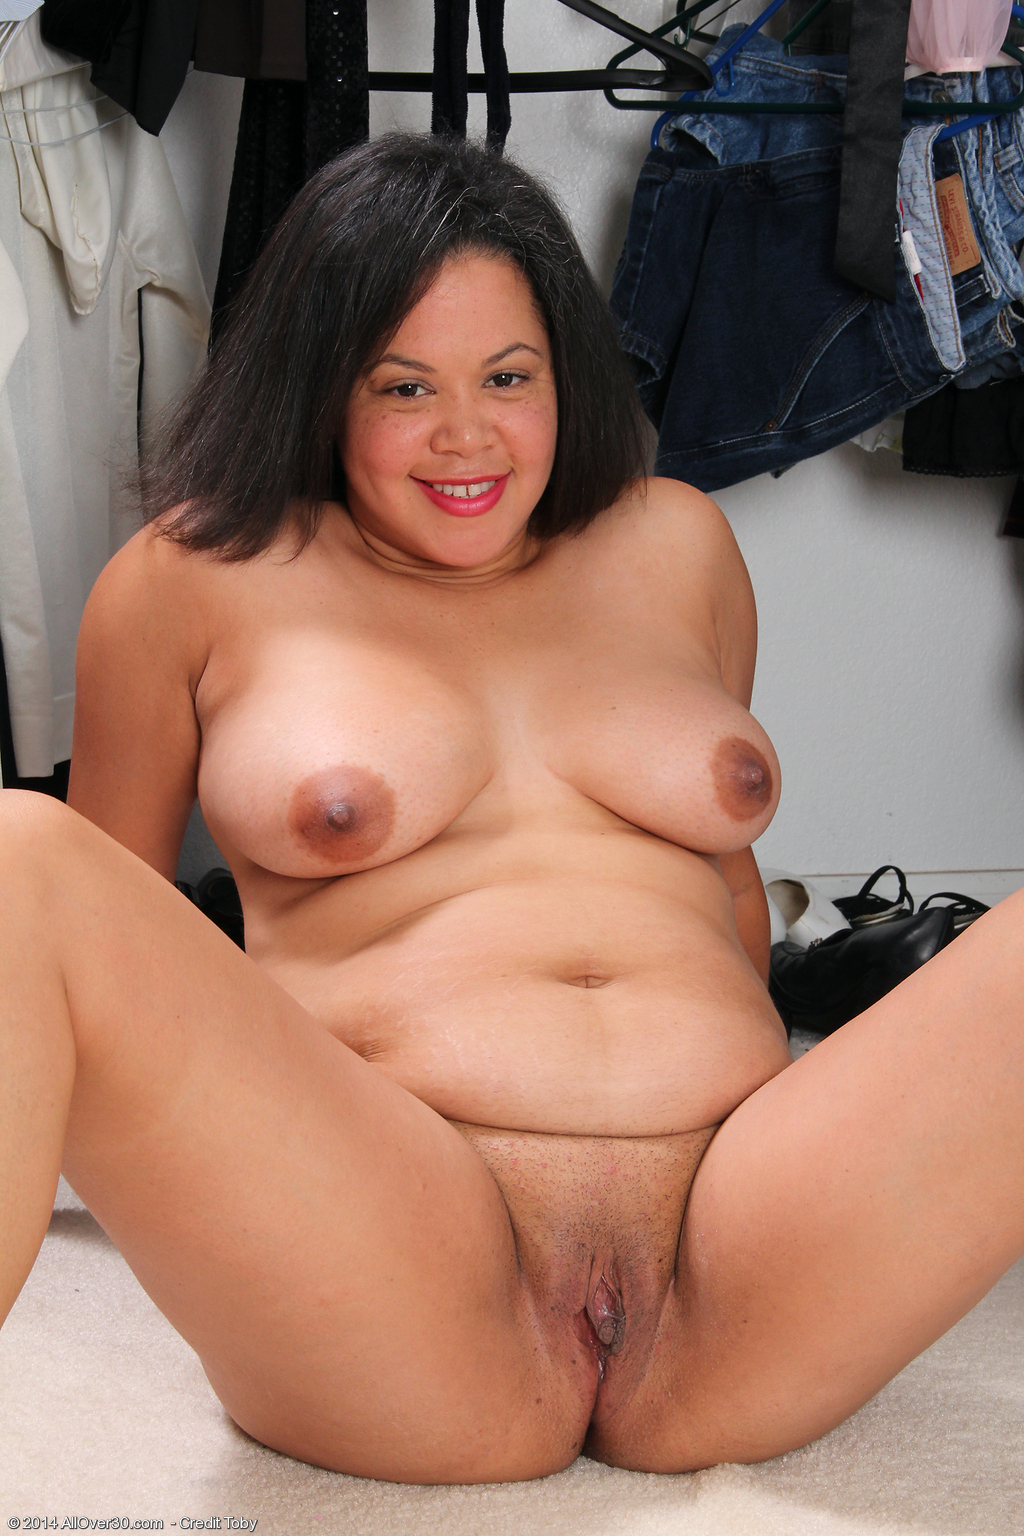 ... Year Old Valerie Wilson - Exclusive MILF Pictures from AllOver30.com